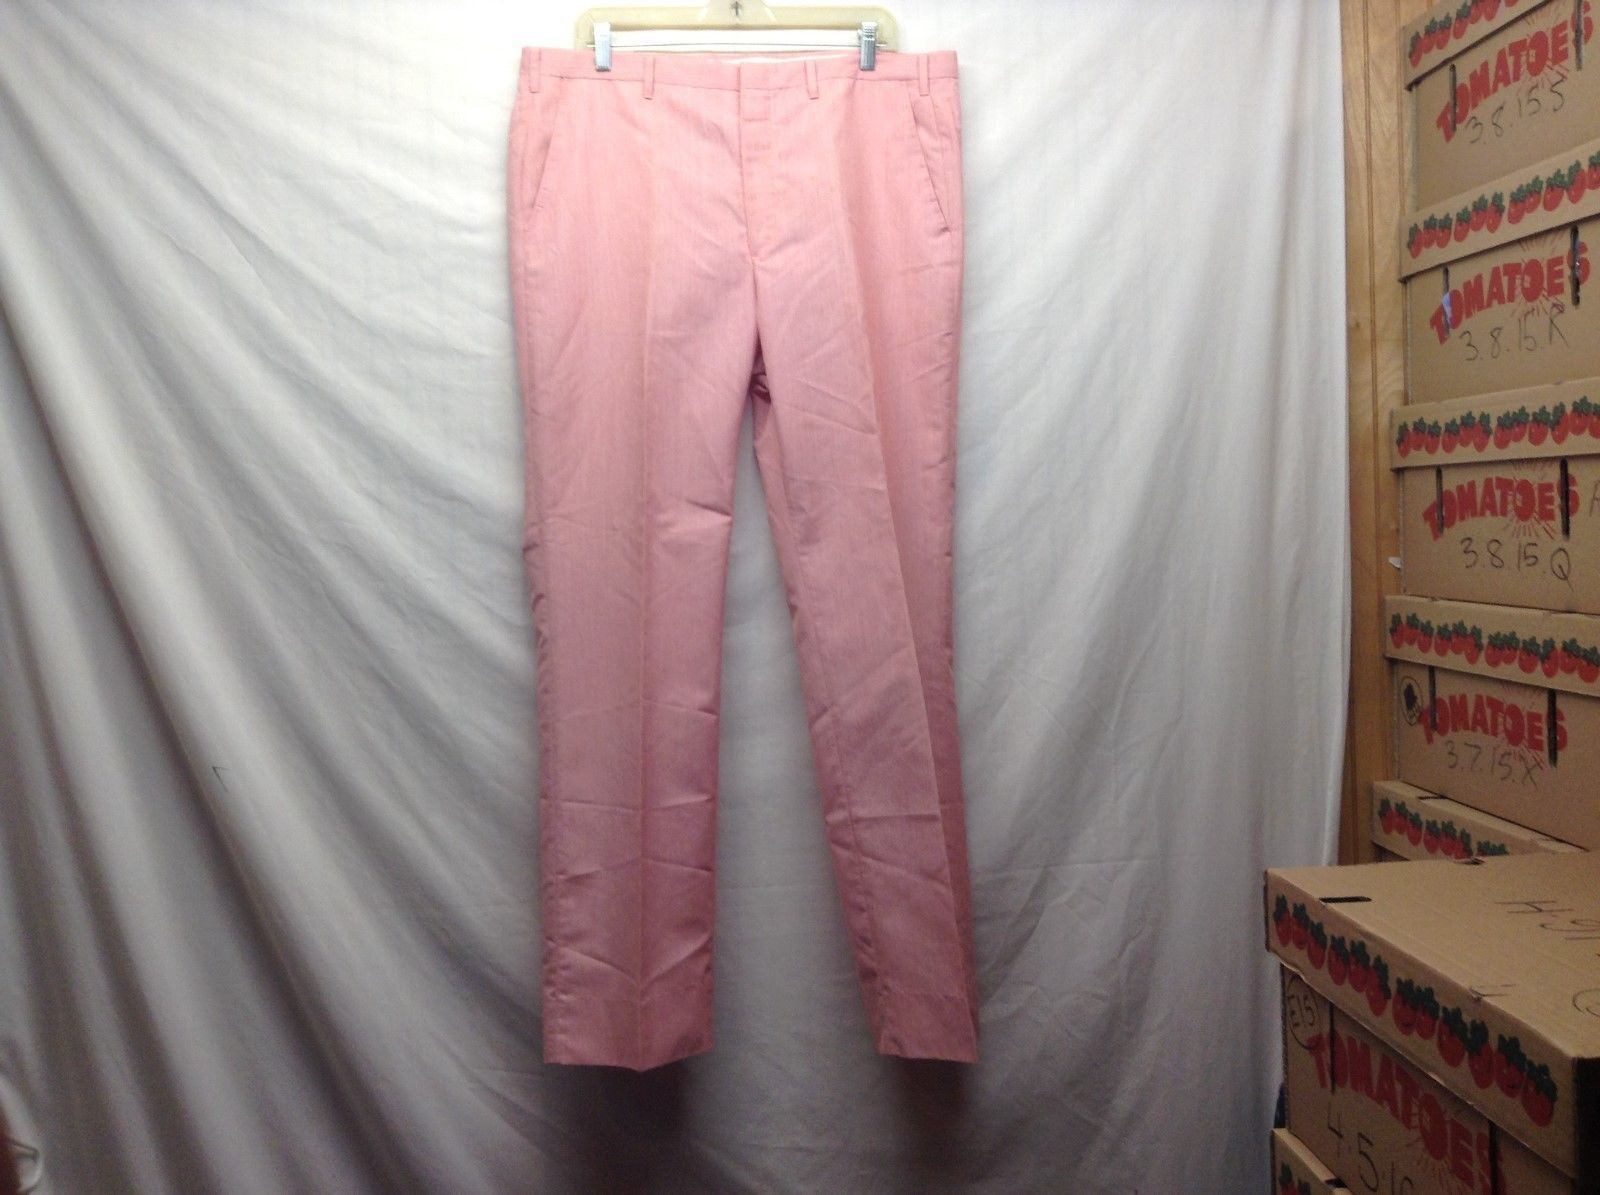 Ladies Vintage Coral Colored Suit Pants